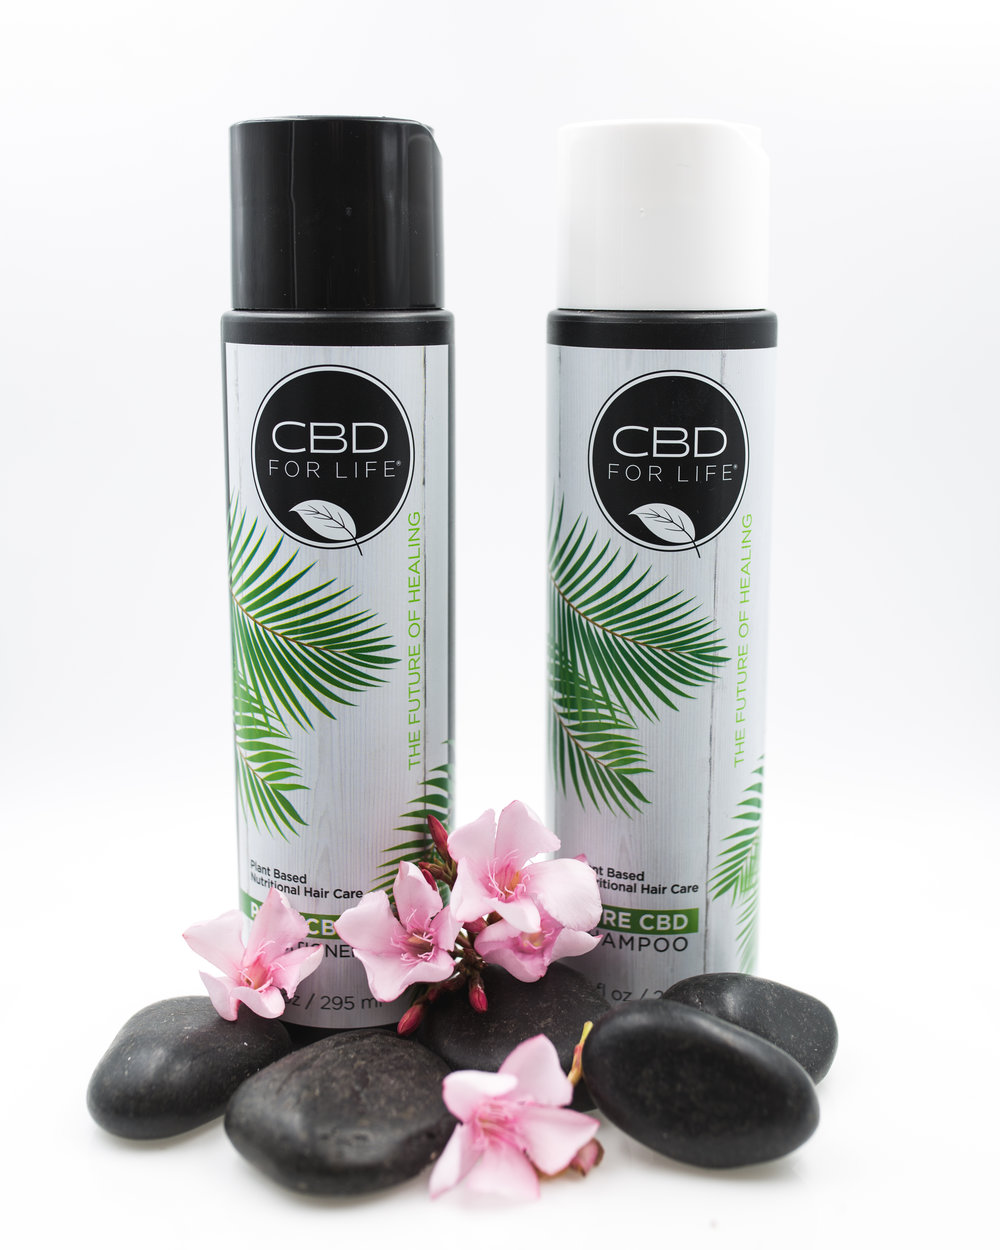 CBD for Life has a wide variety of beauty products that can be used every day! Check them out!